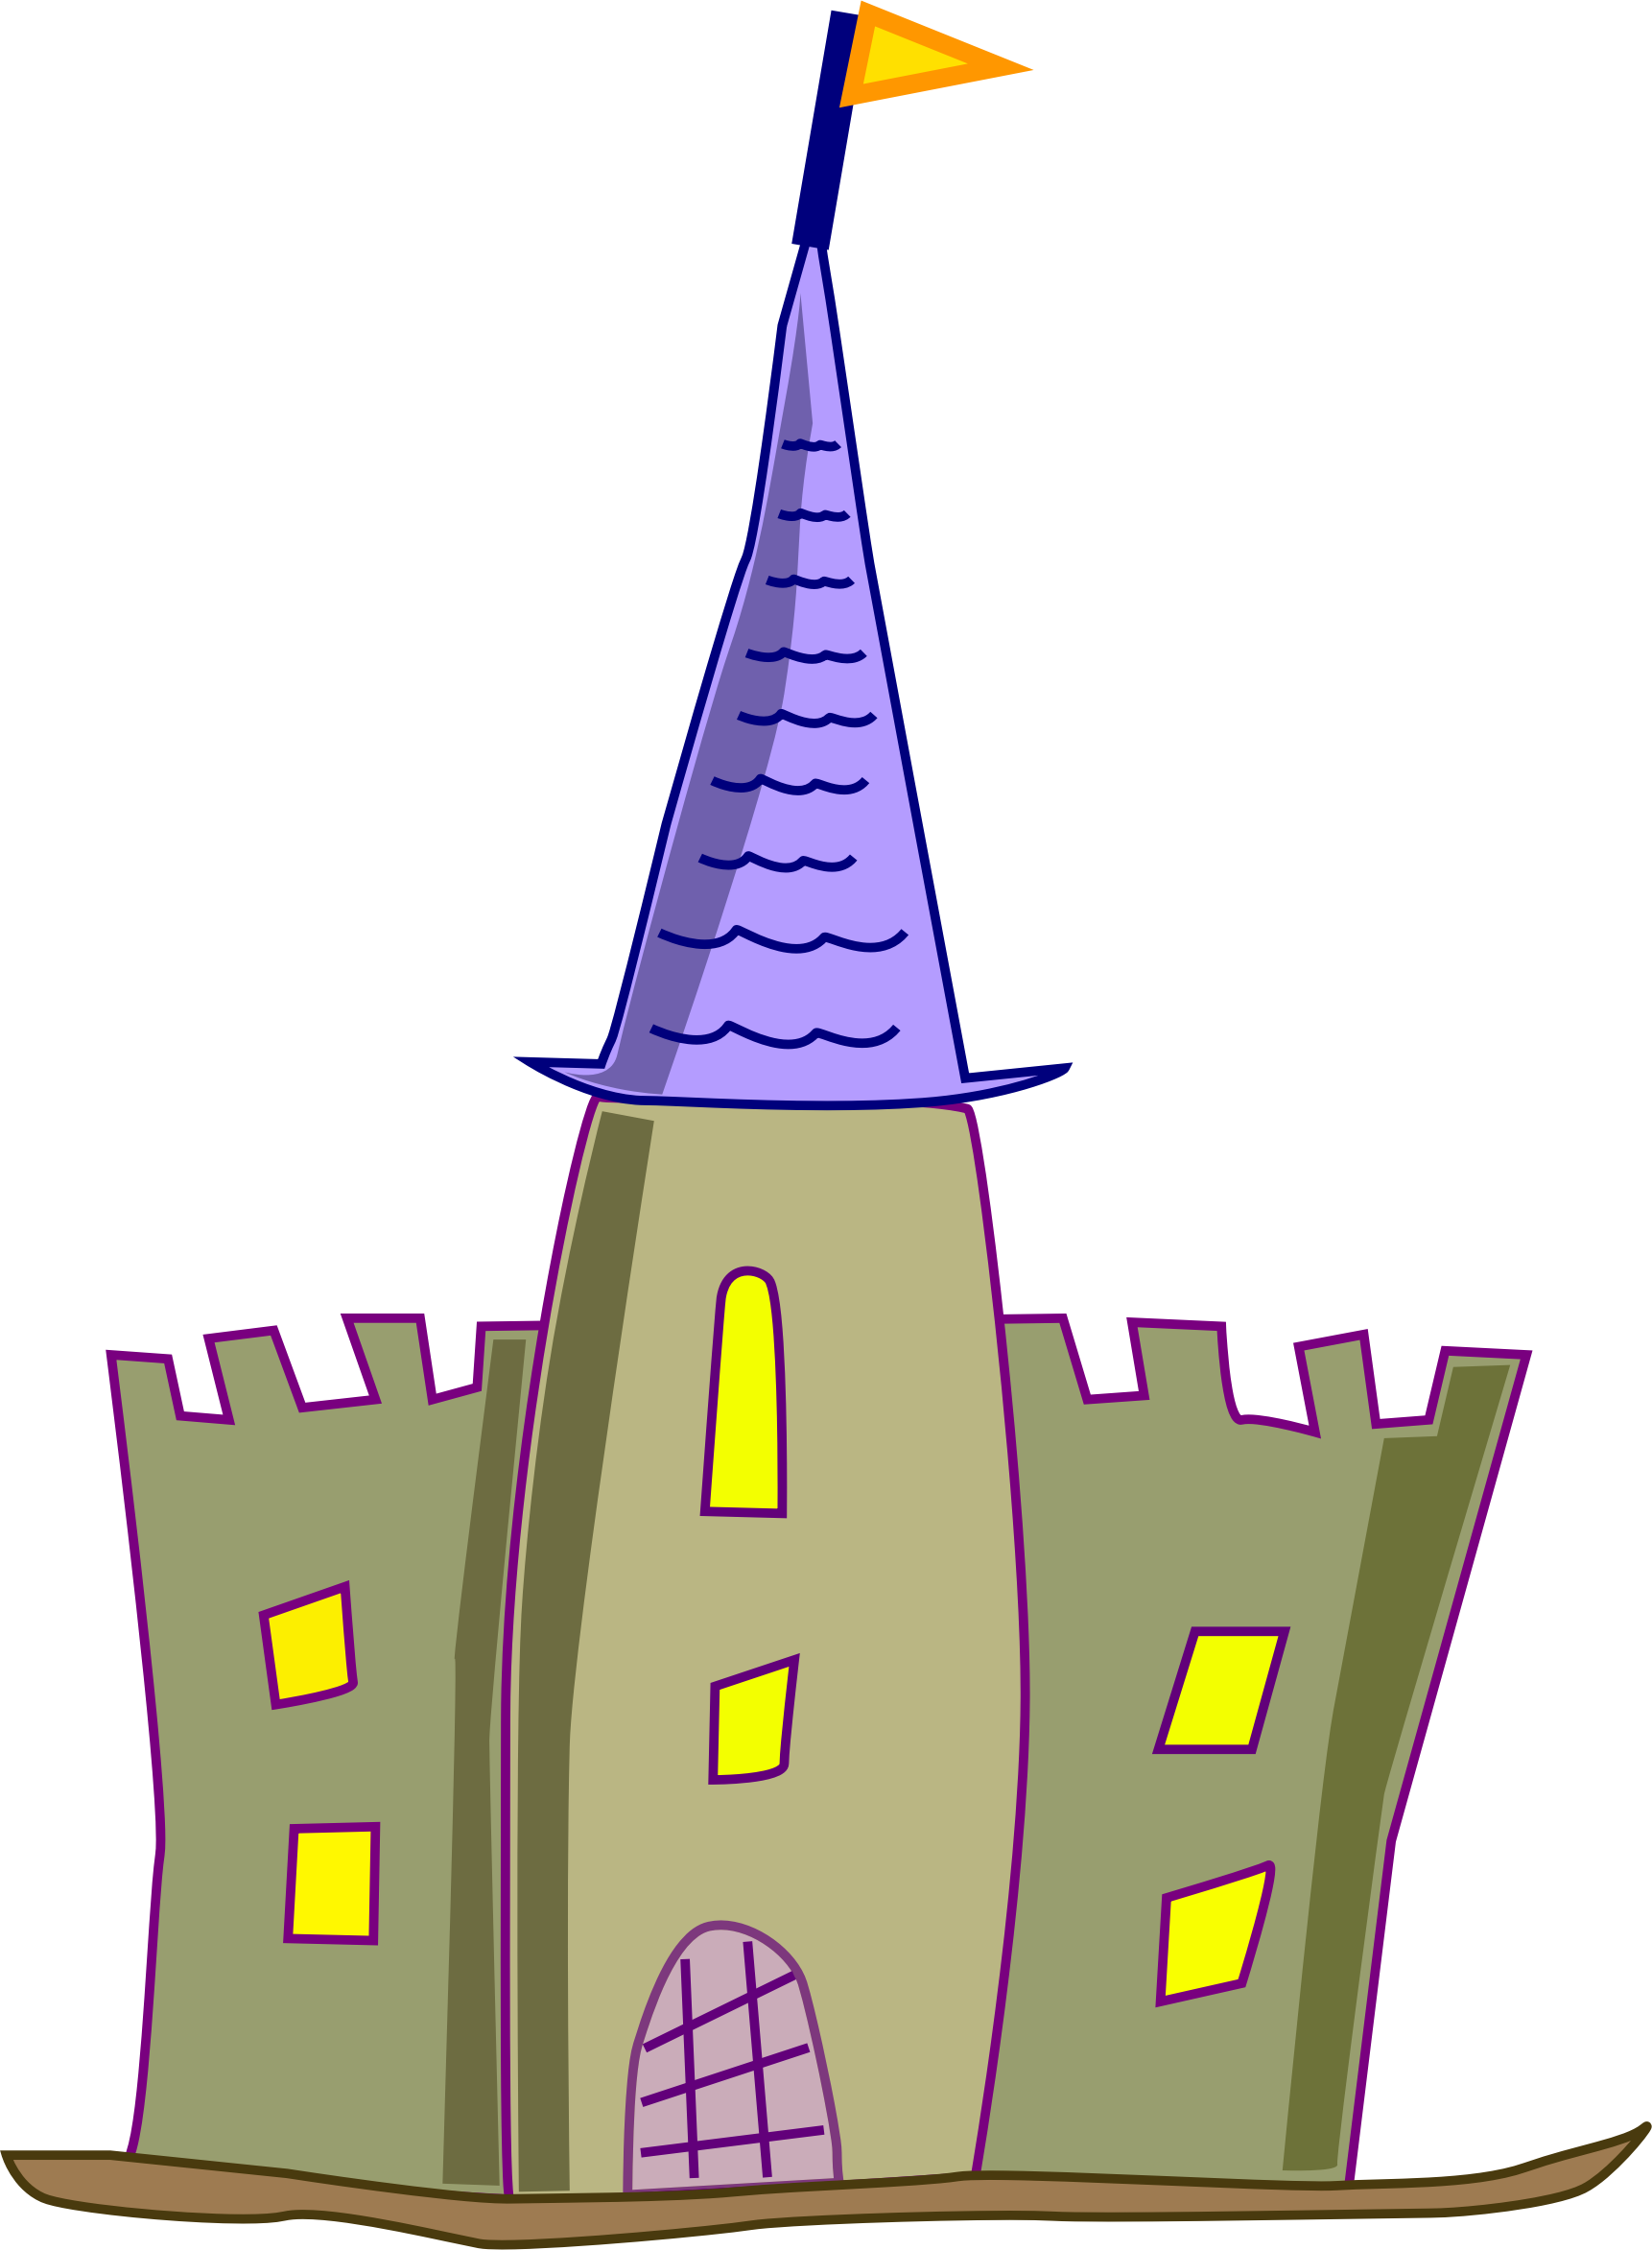 Fish castle clipart jpg free download Simple Castle Clipart at GetDrawings.com | Free for personal use ... jpg free download